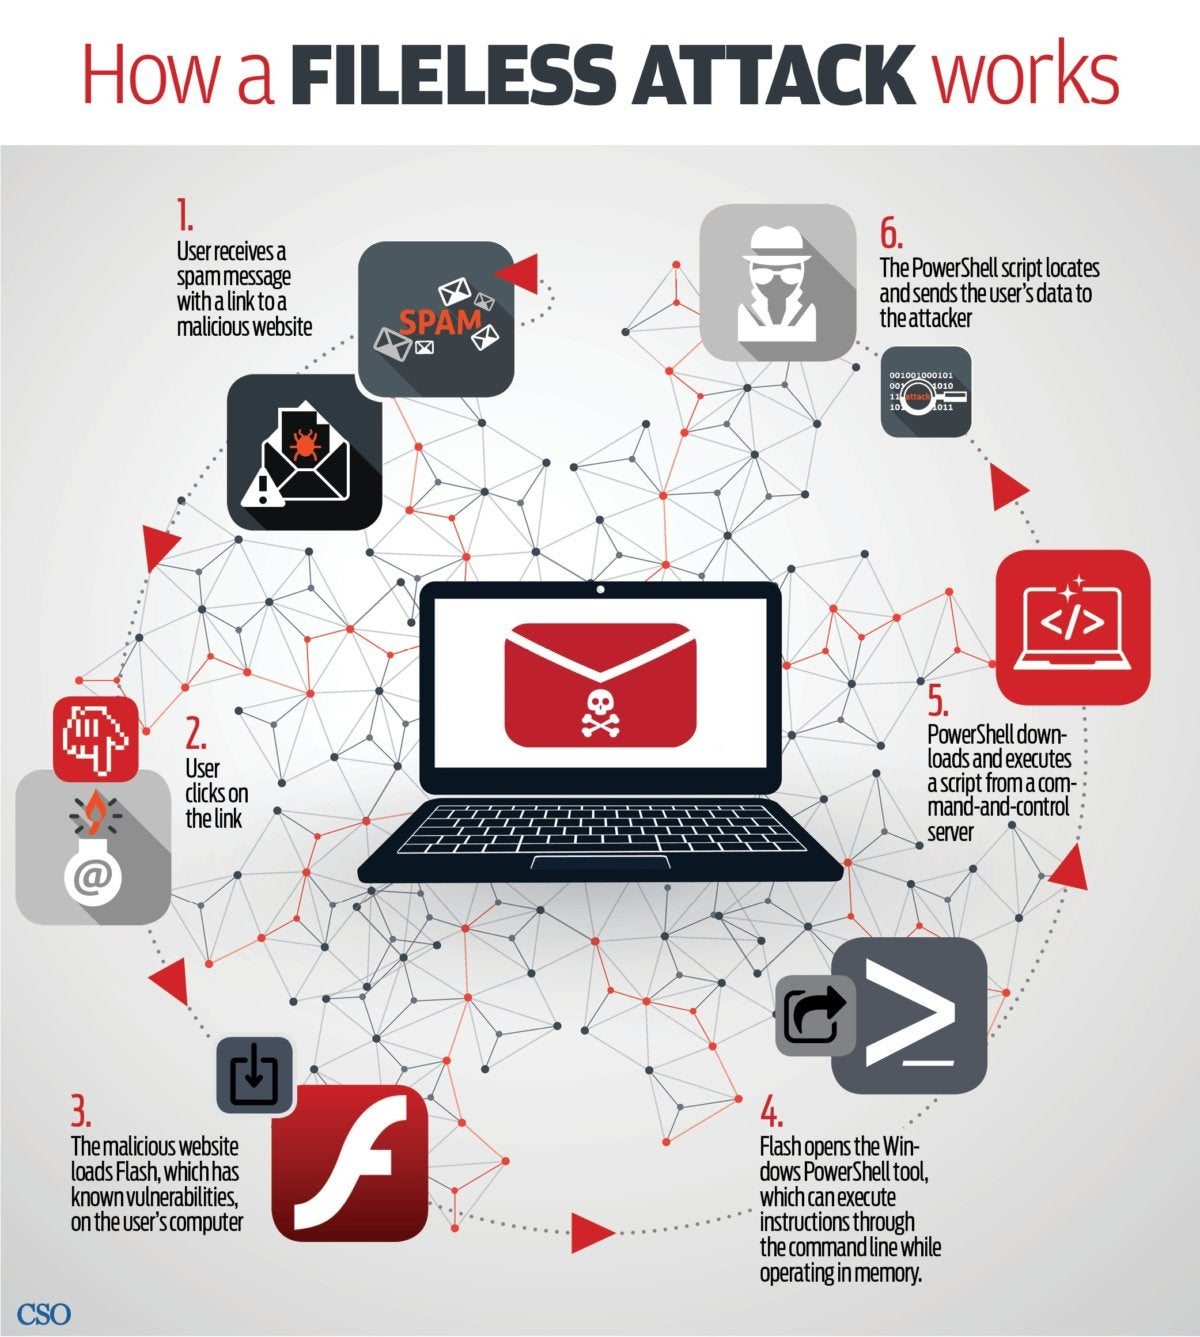 spam fileless computer attack infographic v2